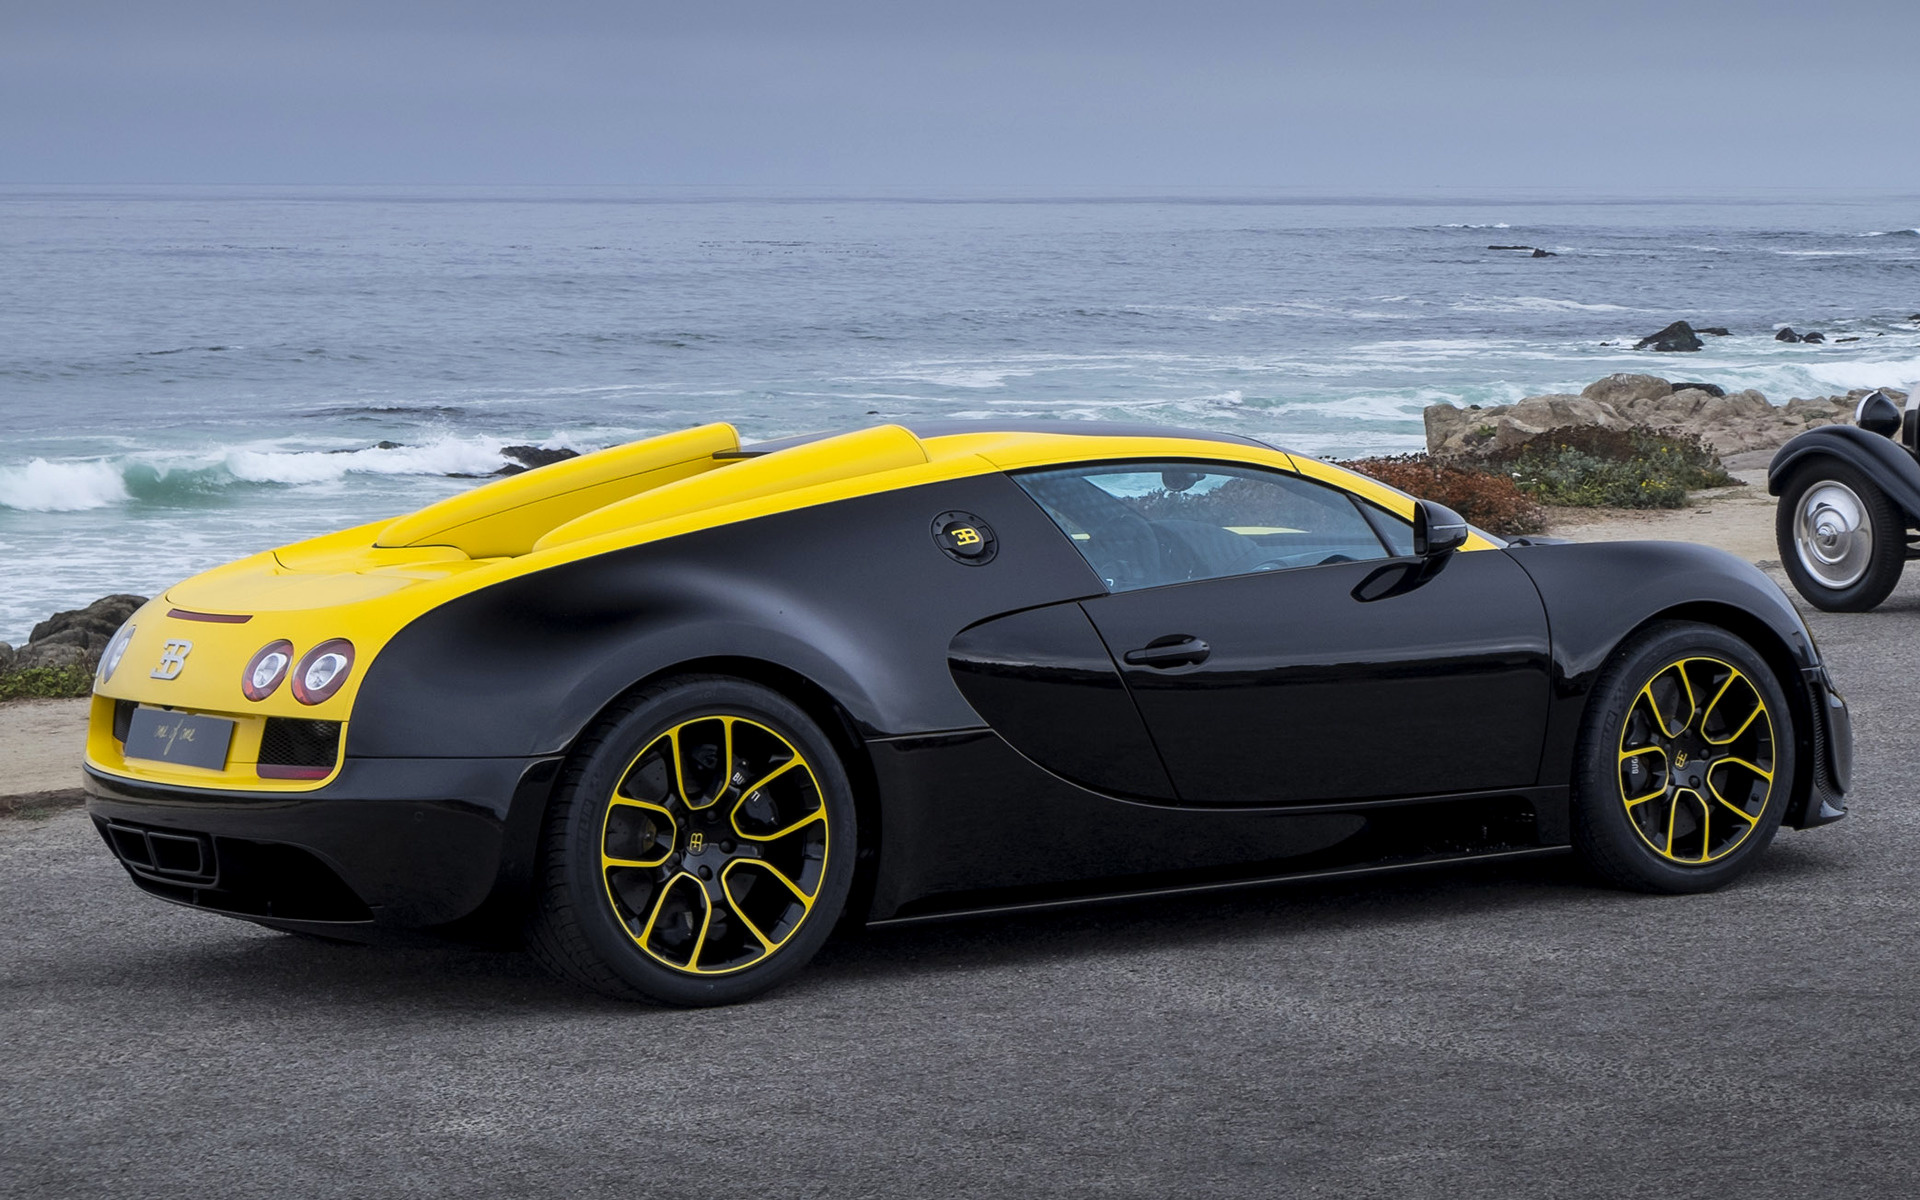 bugatti veyron grand sport vitesse 1 of 1 2014 wallpapers and hd images c. Black Bedroom Furniture Sets. Home Design Ideas